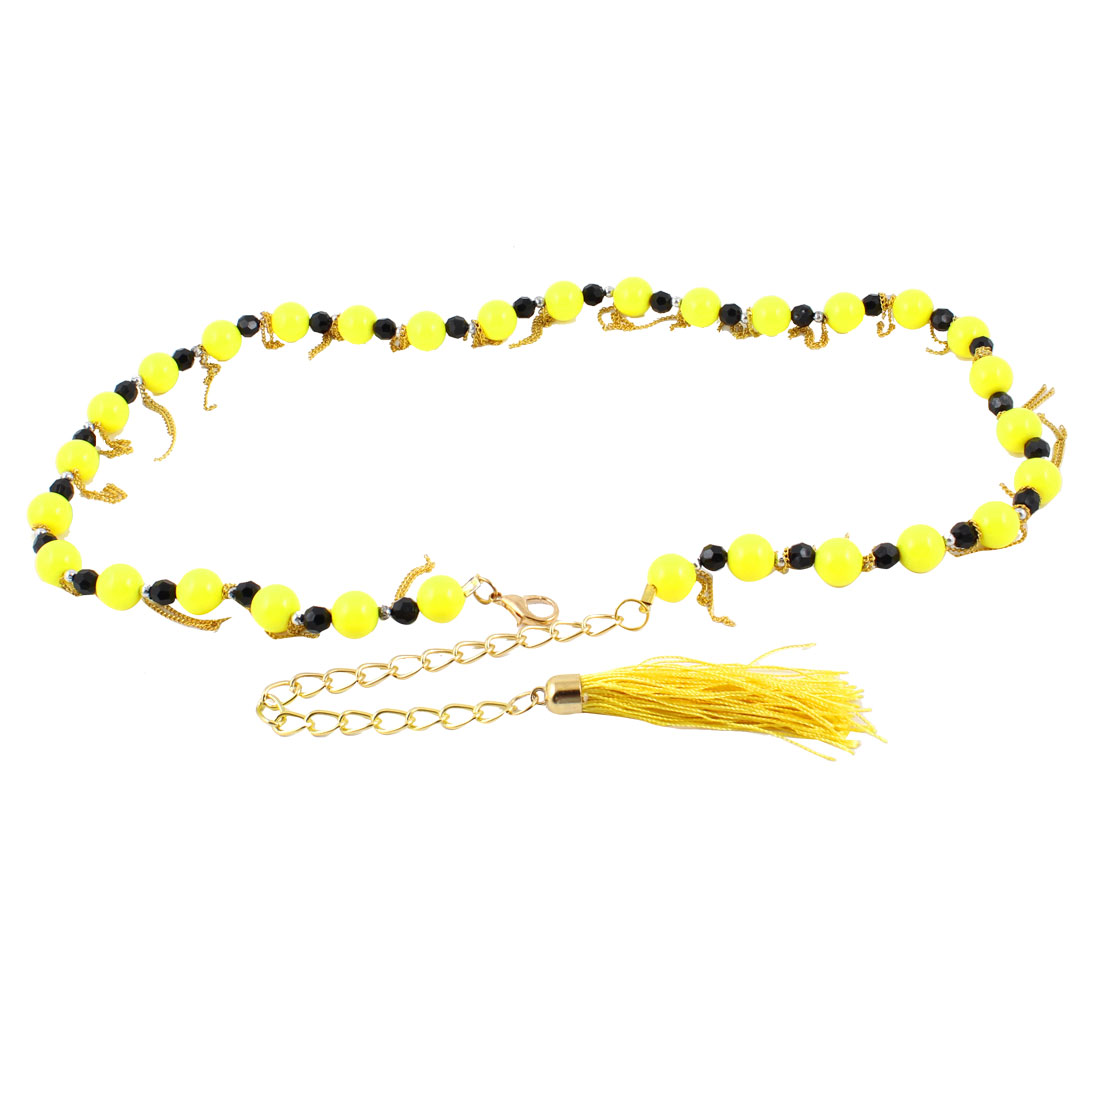 Woman Lobster Clasp Plastic Beads Decor Adjustable Chain Waist Belt Band Yellow